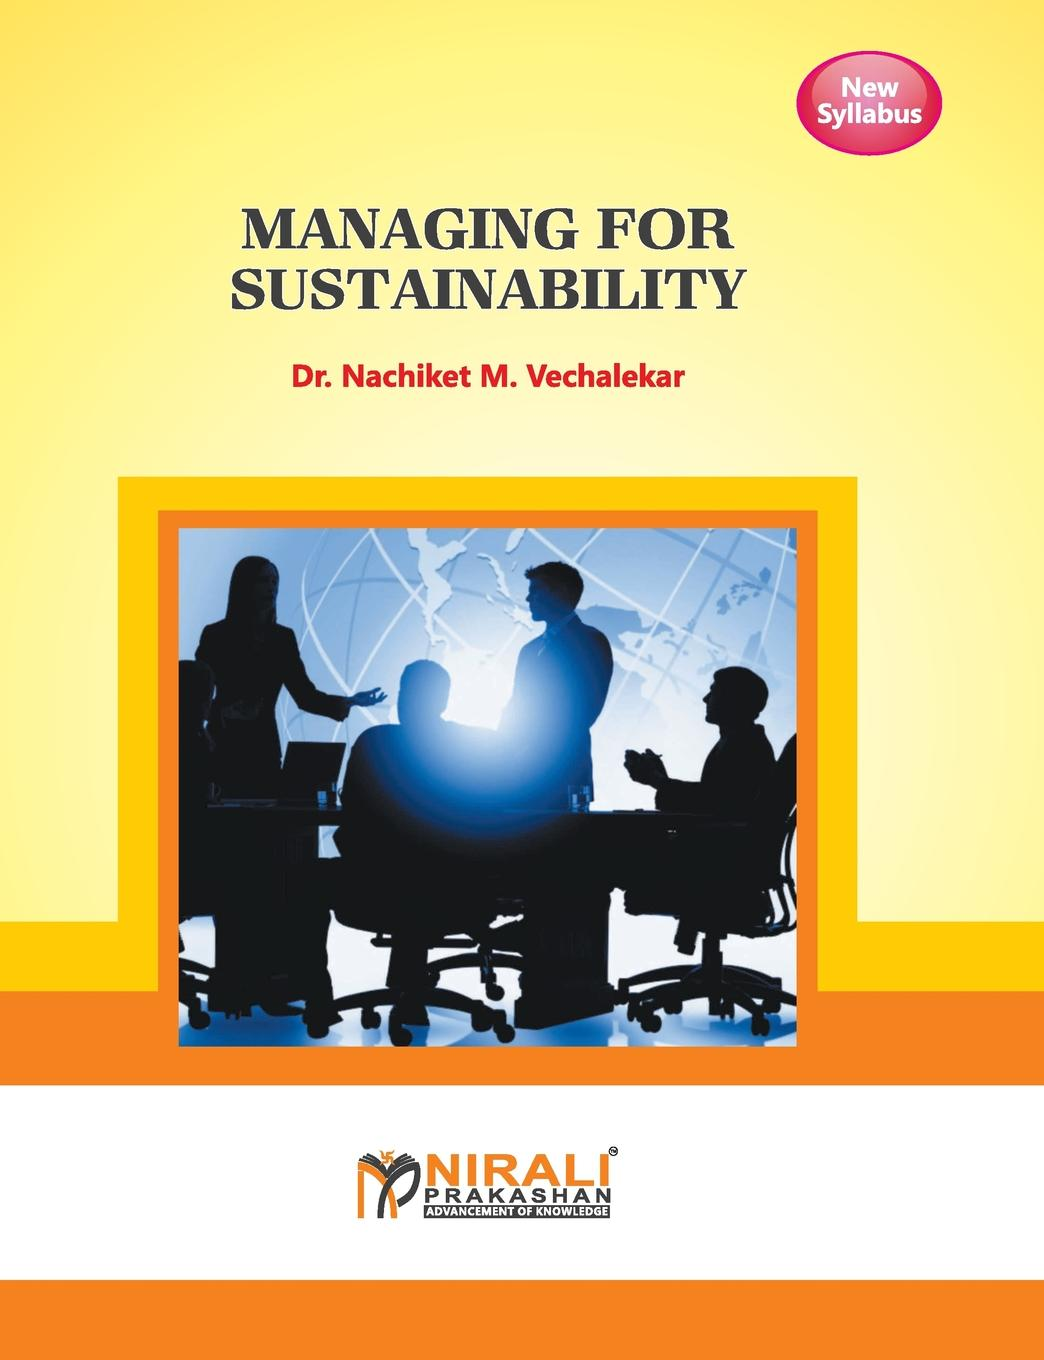 DR N M VECHLEKAR MANAGING FOR SUSTAINABILITY petter brunsael corporate social responsibility